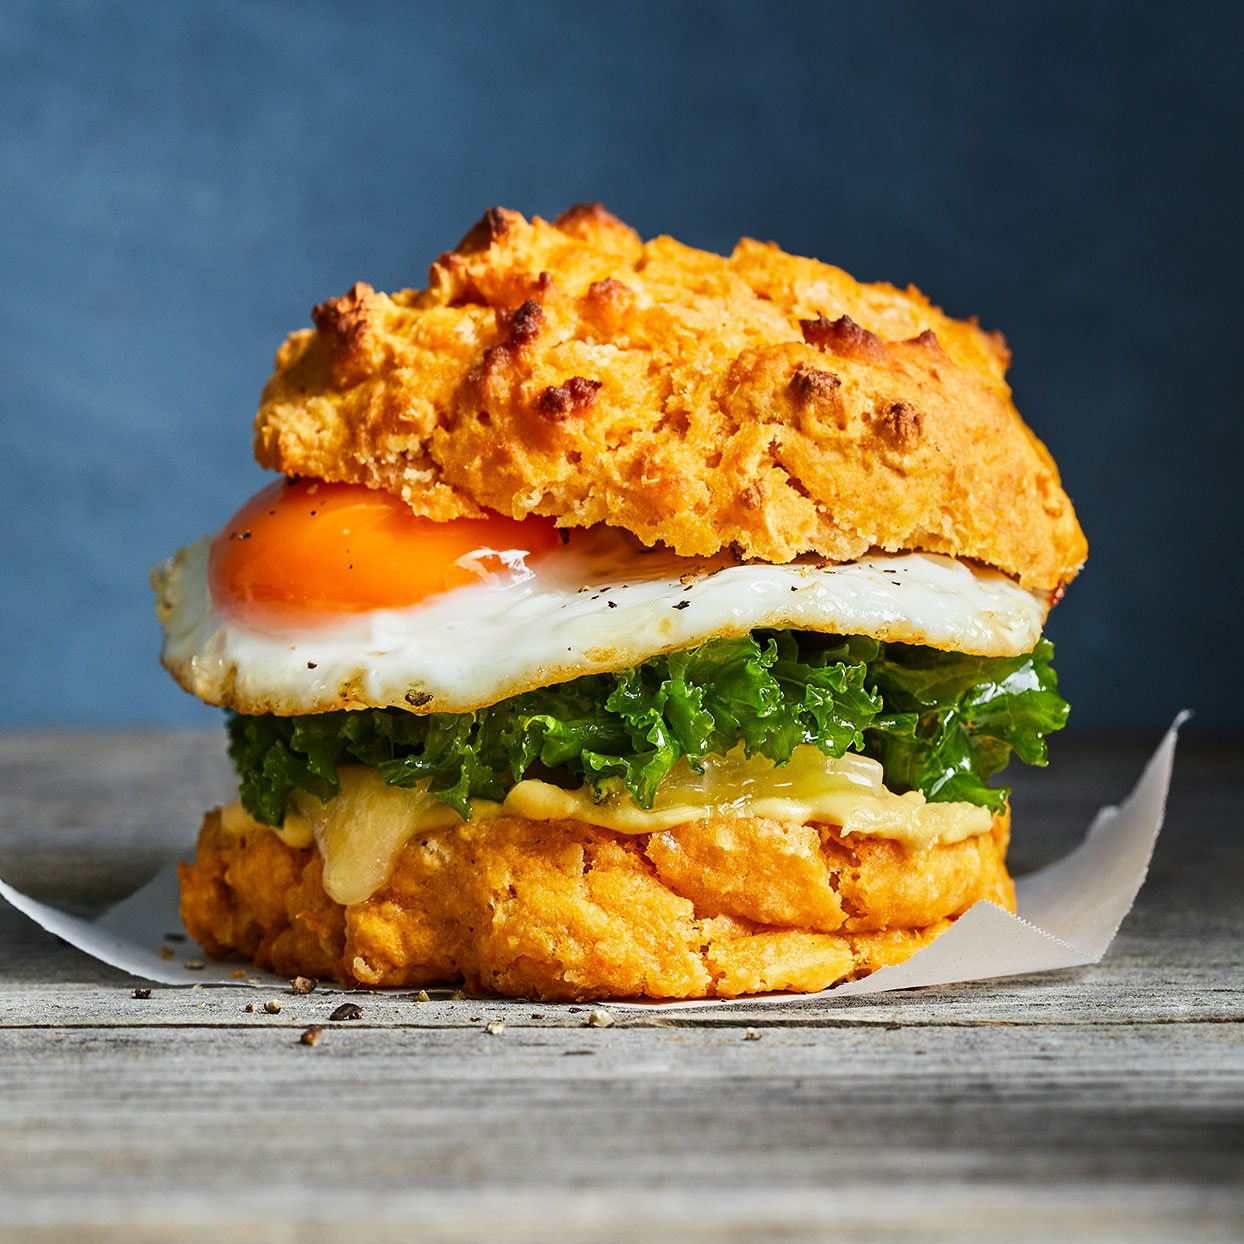 Sweet Potato Biscuit Sandwiches with Egg, Kale & Cheddar